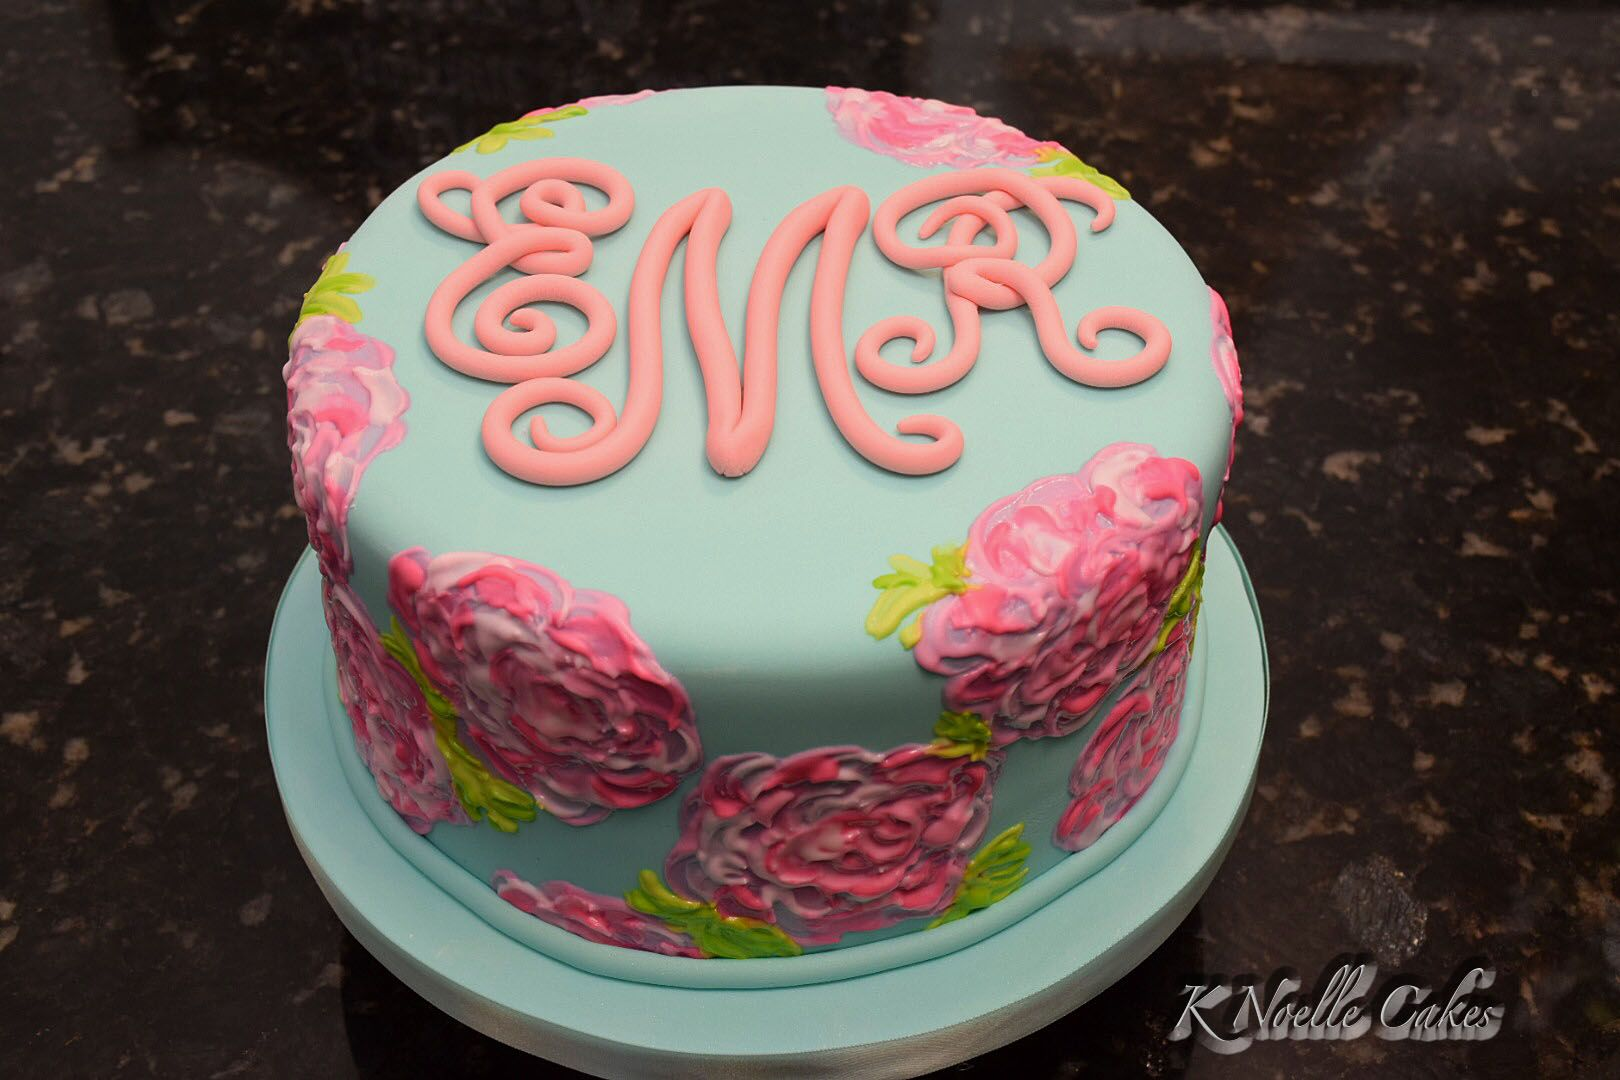 Birthday Cake With Name Jimmy ~ A lilly pulitzer inspired floral birthday cake cake